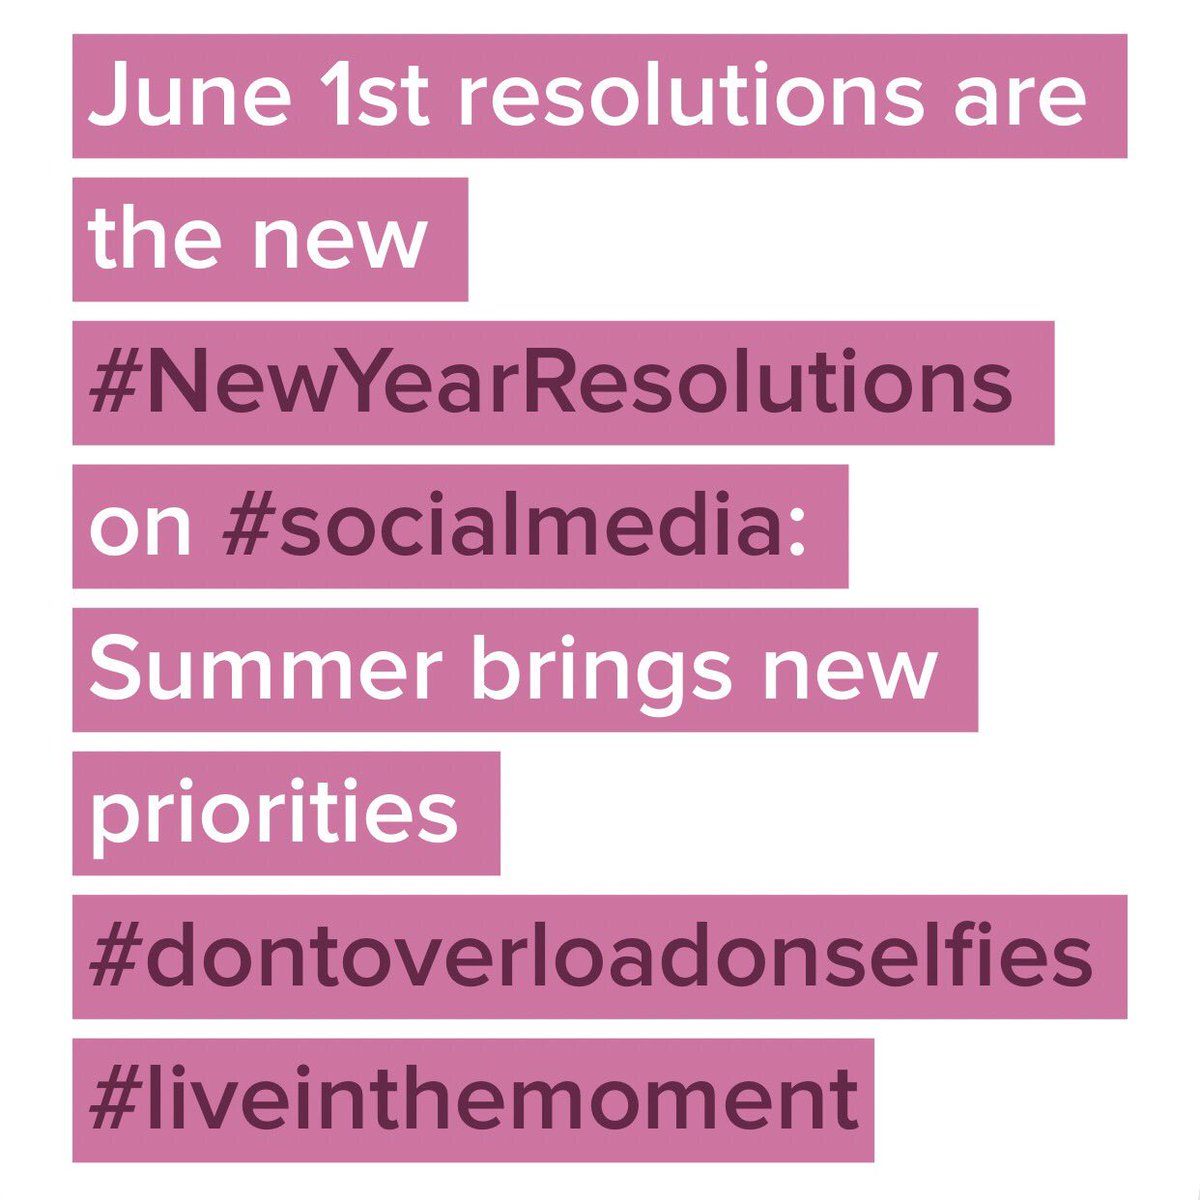 June 1st resolutions are the new #NewYearResolutions on #socialmedia: Summer brings new priorities #mantra<br>http://pic.twitter.com/7zYQBU1YVy